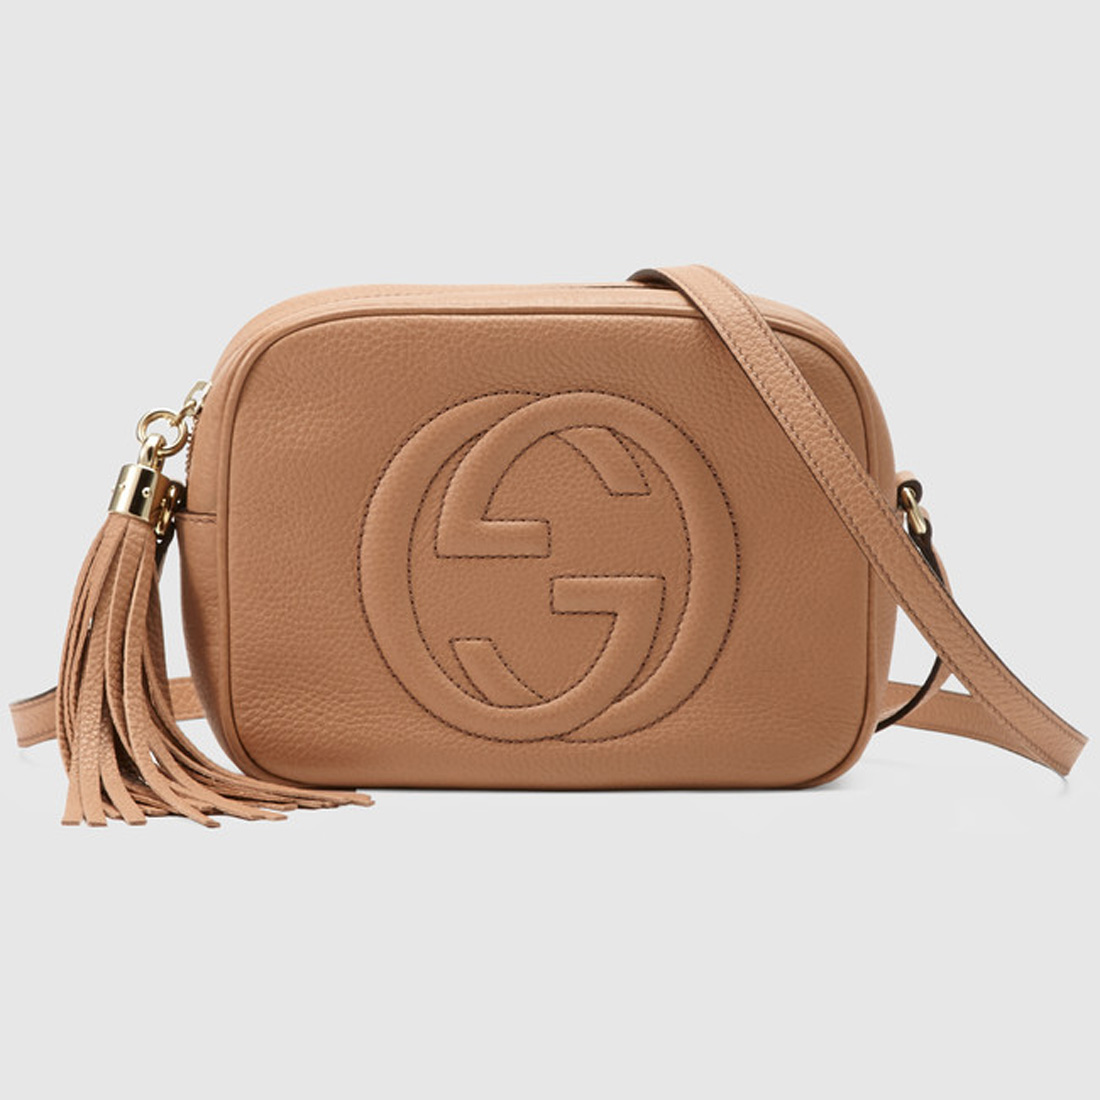 how much is my gucci purse worth